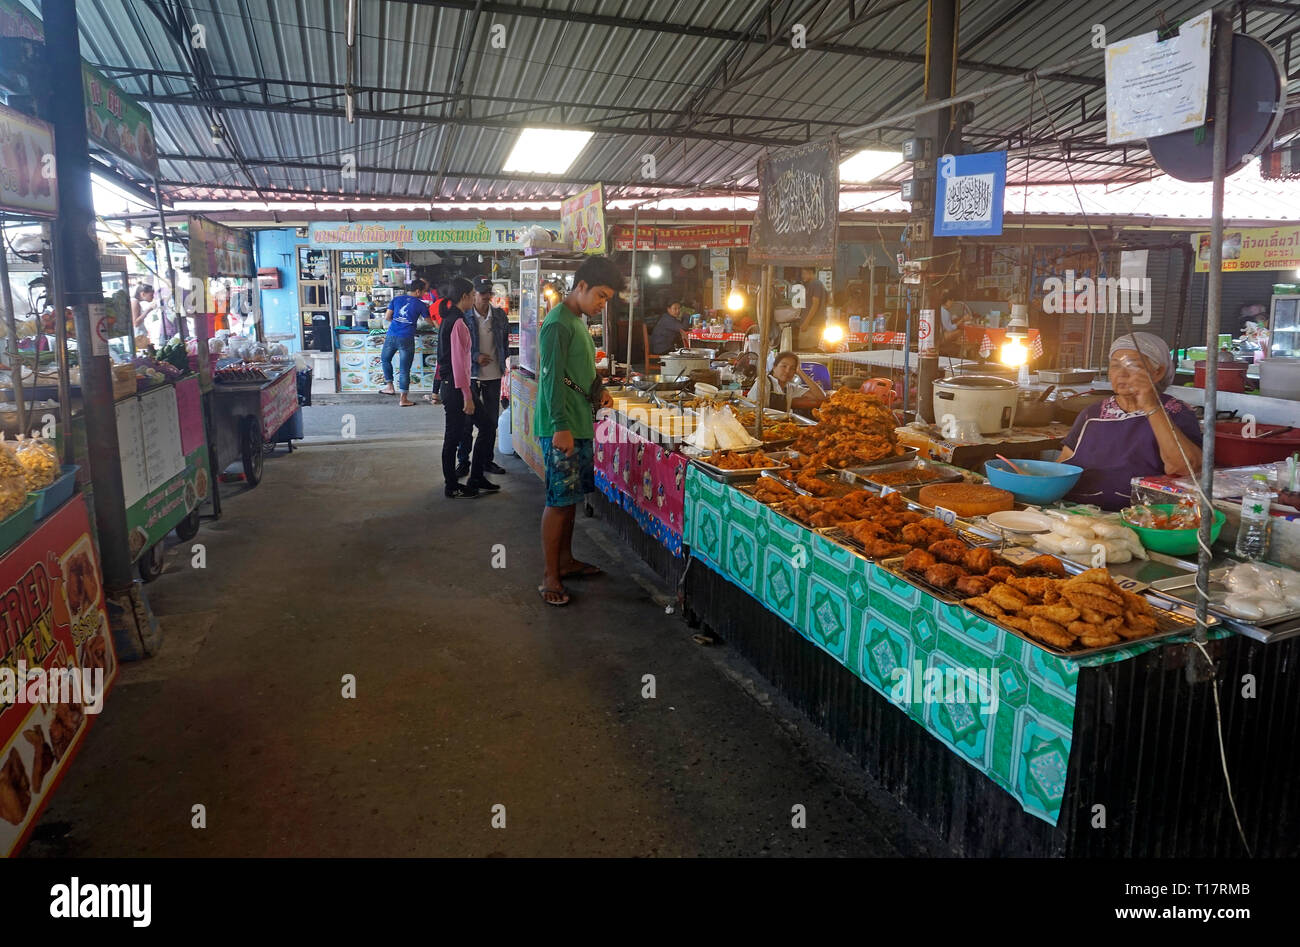 Thai women sells fresh cooked food at Lamai market, Lamai center, Koh Samui, Surat Thani, Gulf of Thailand, Thailand - Stock Image